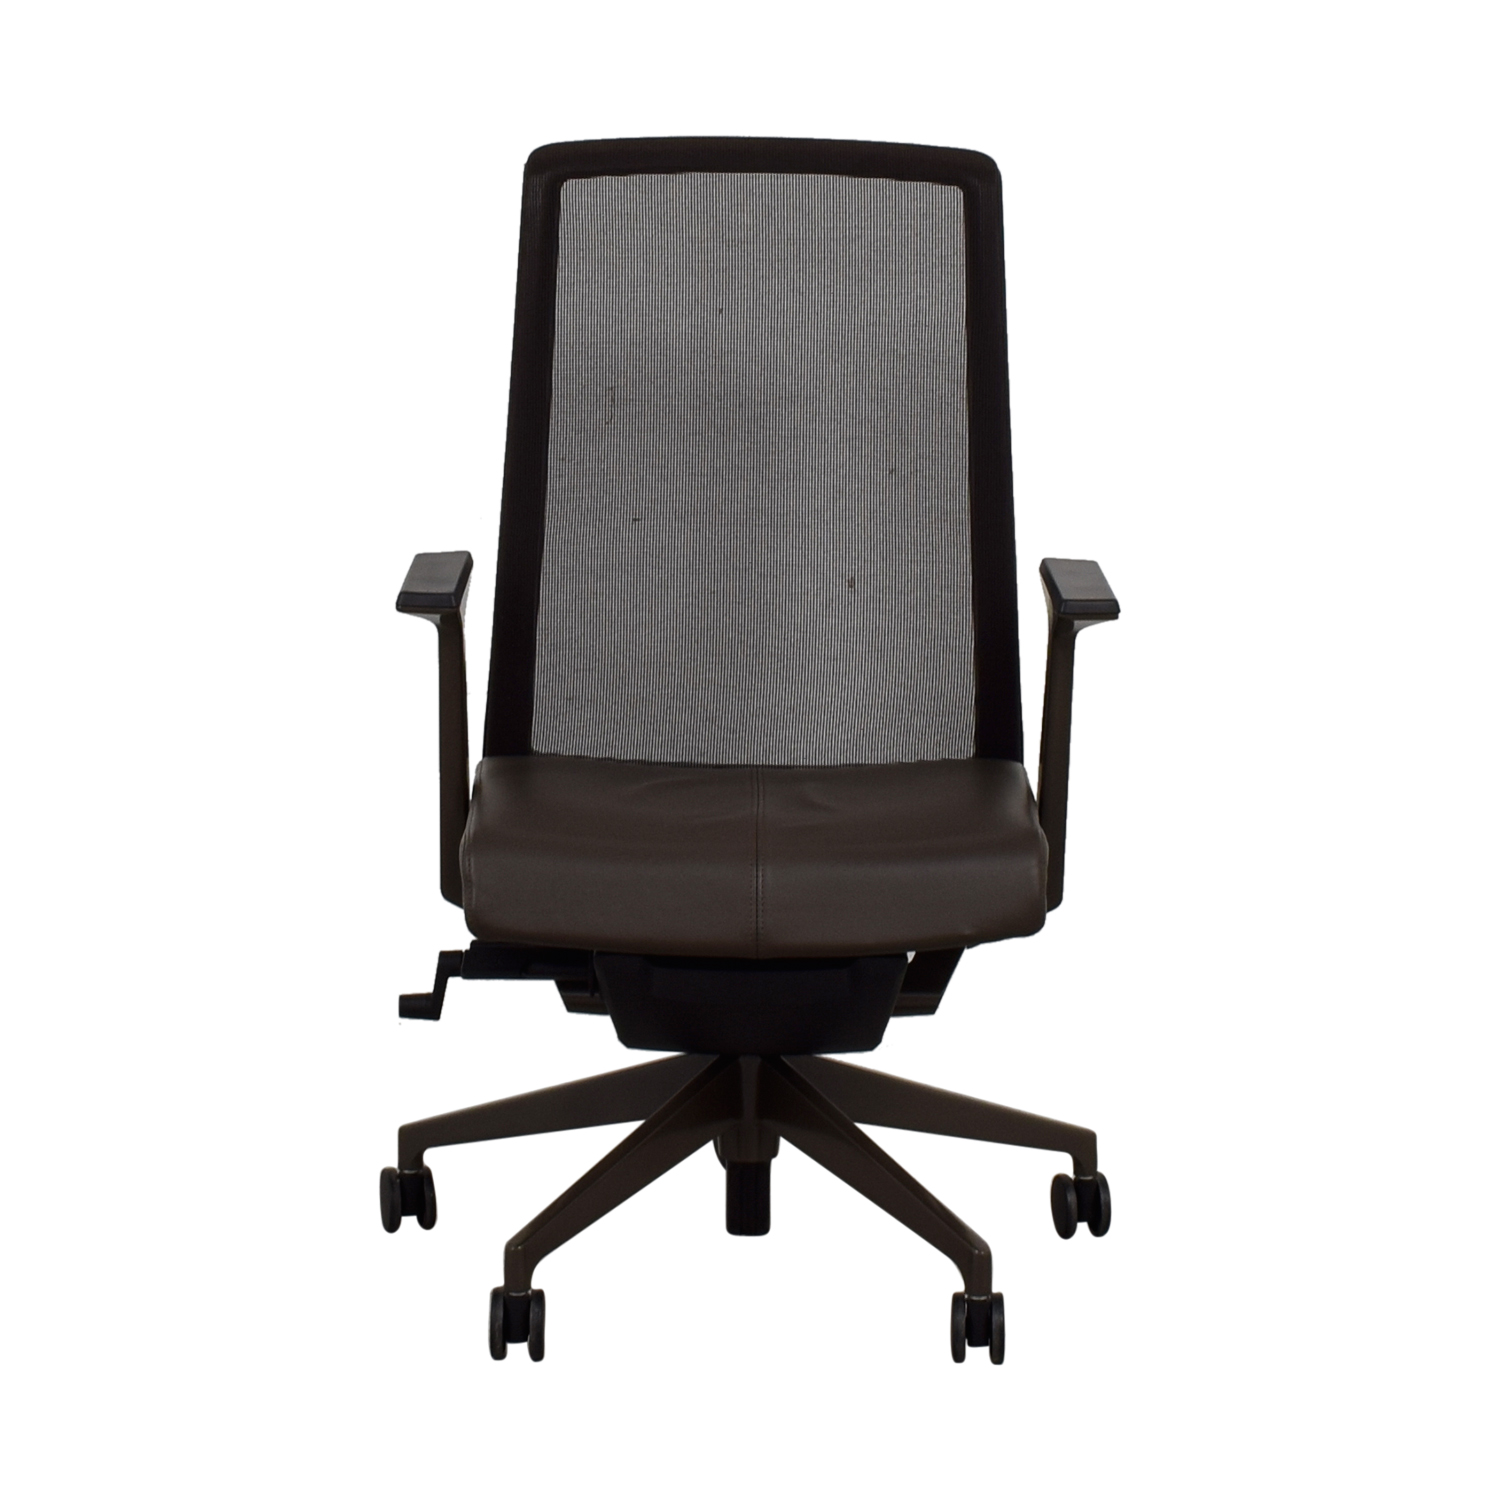 shop Crate & Barrel Crate & Barrel Haworth Brown Very Task Office Chair online